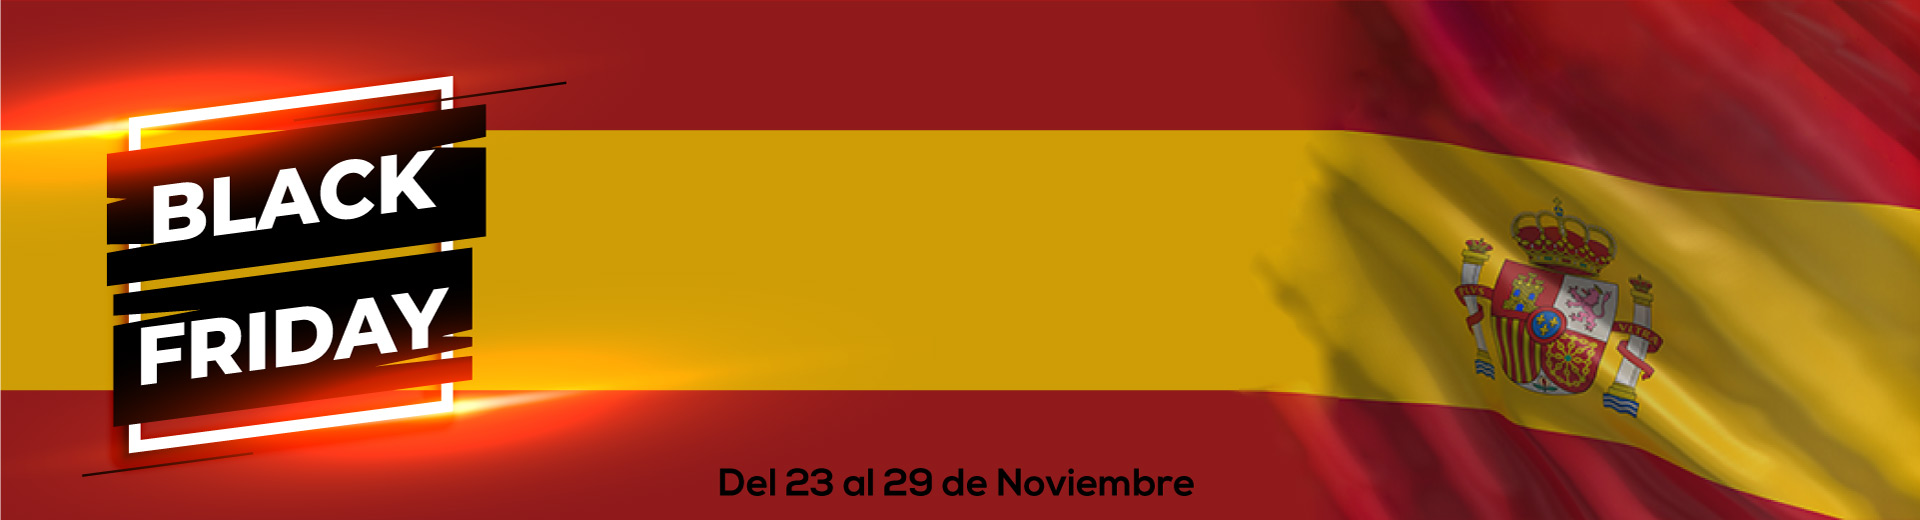 Black Friday en Arenal de Sevilla